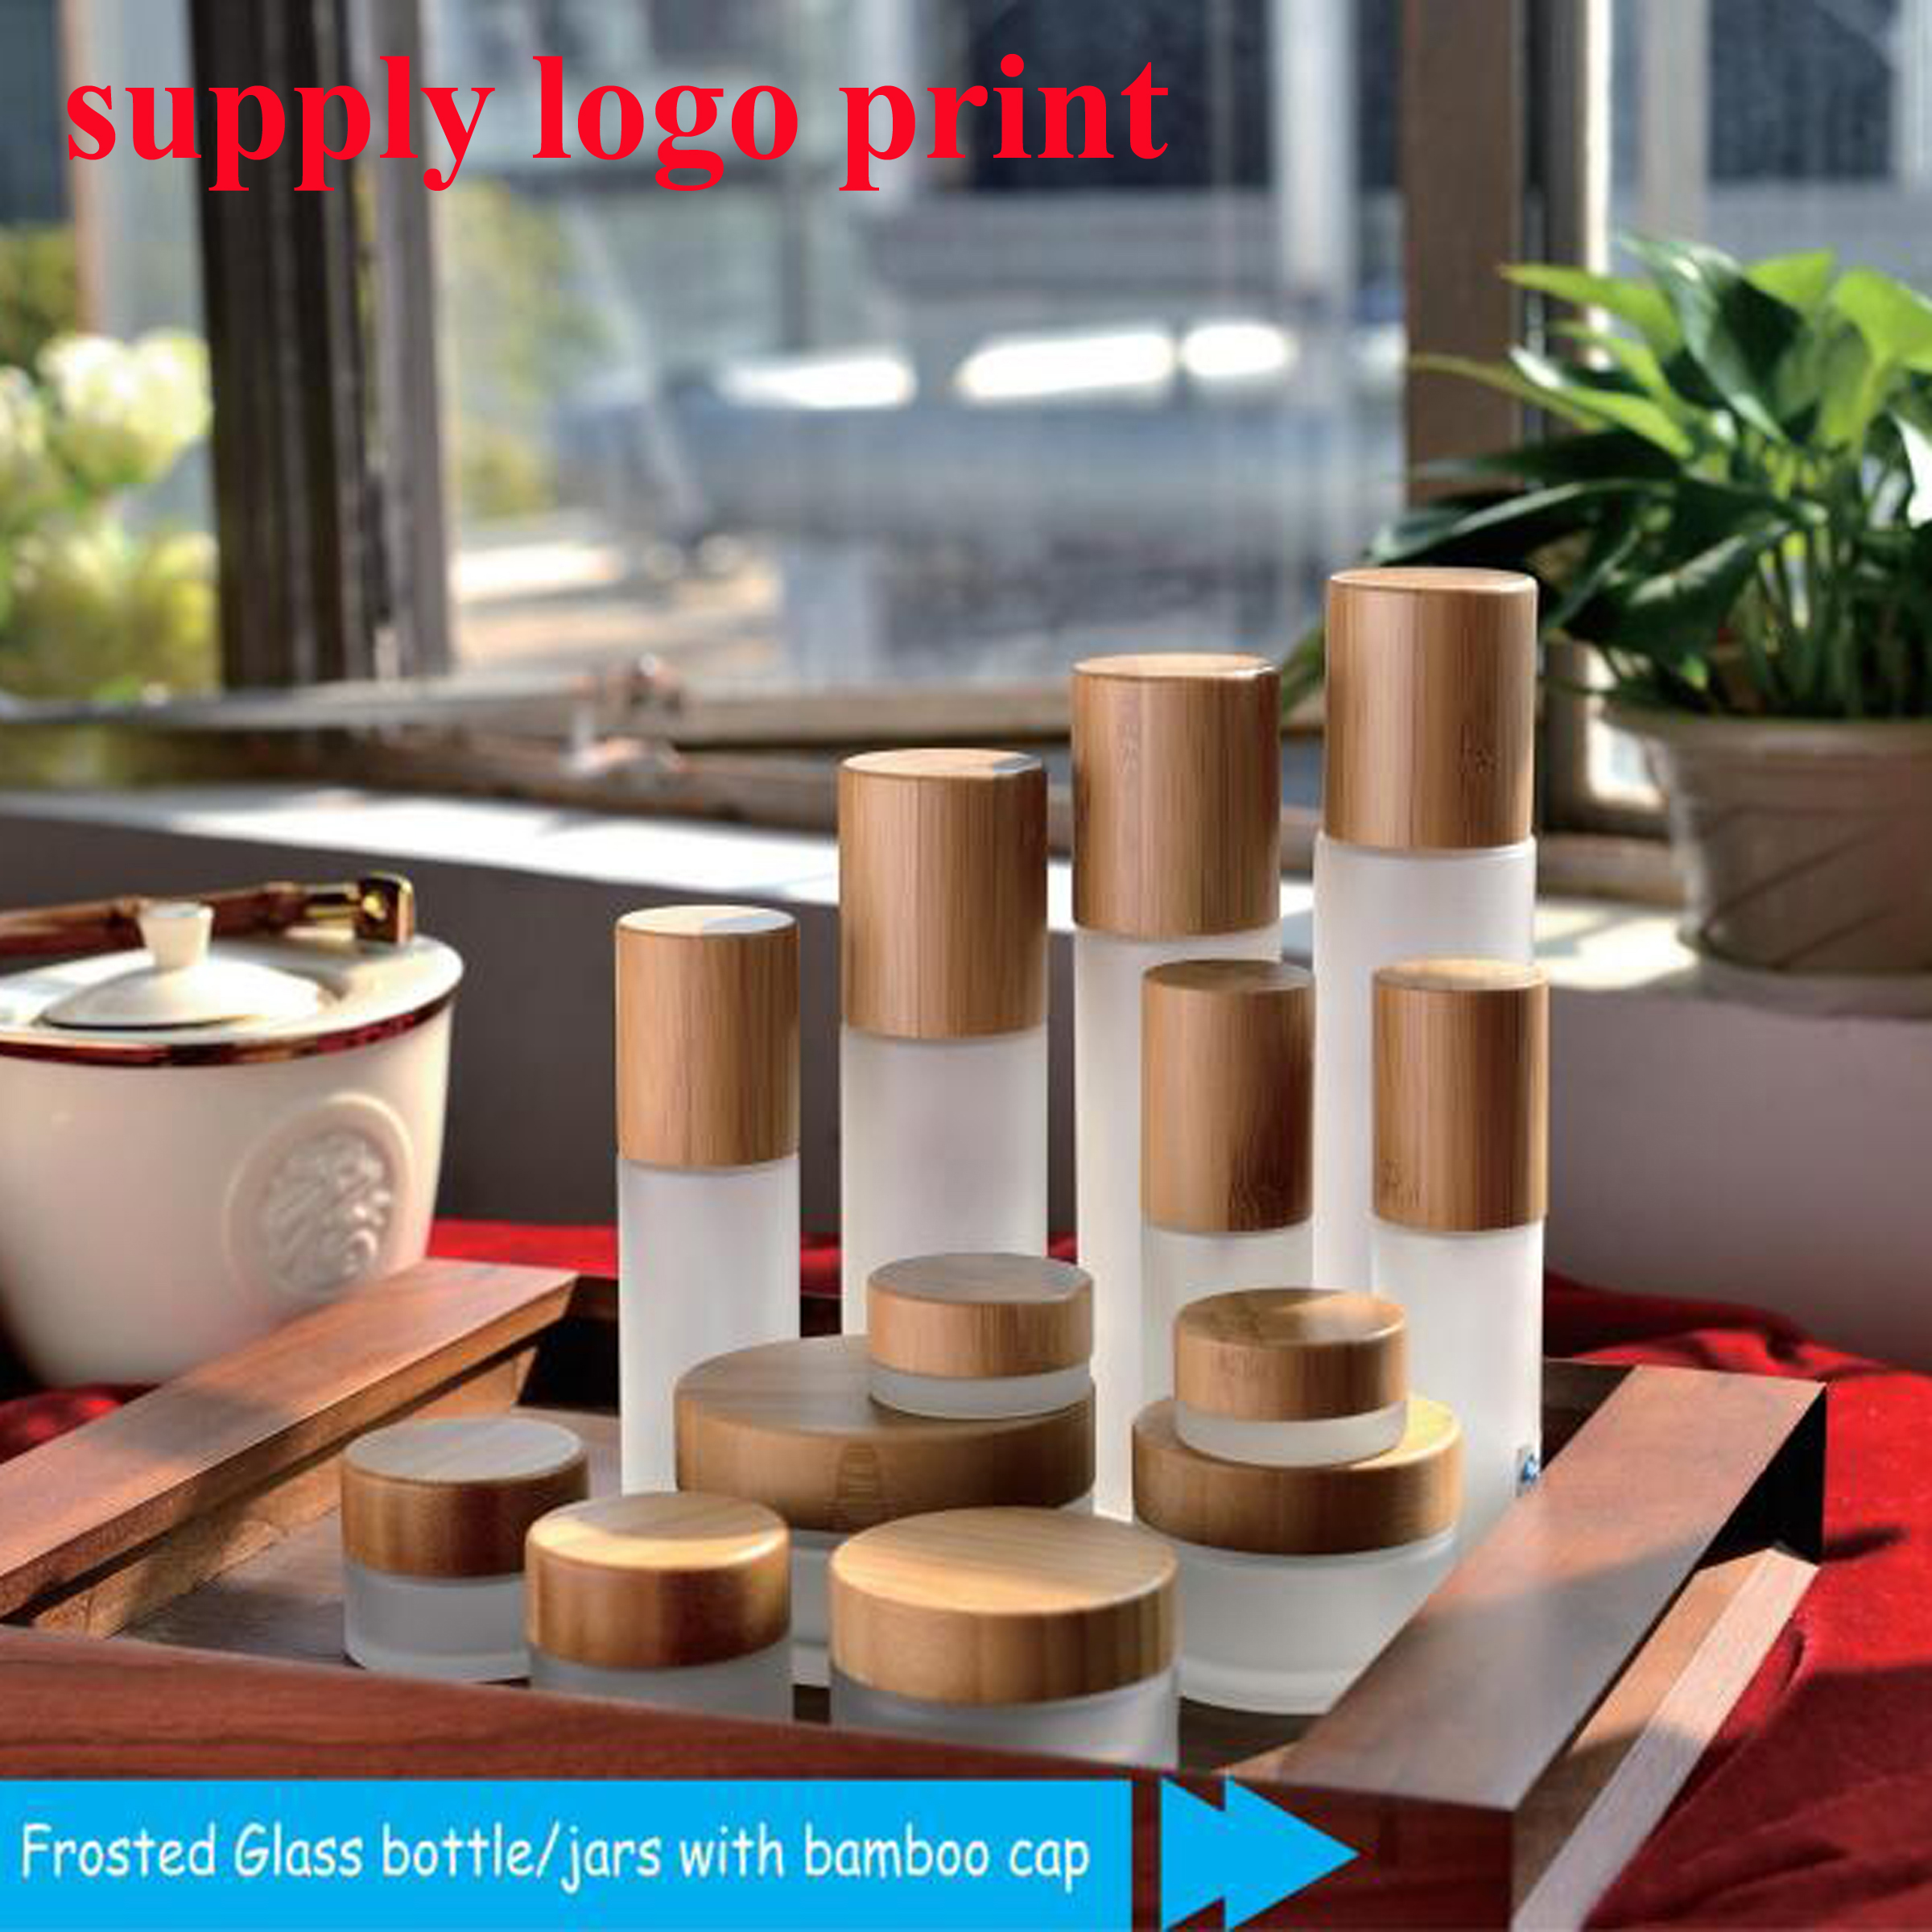 50pcs/lot 5G/15G/30G/50G/100G High-grade Cosmetic Jar Bamboo Cover, Frosted Glass Jars